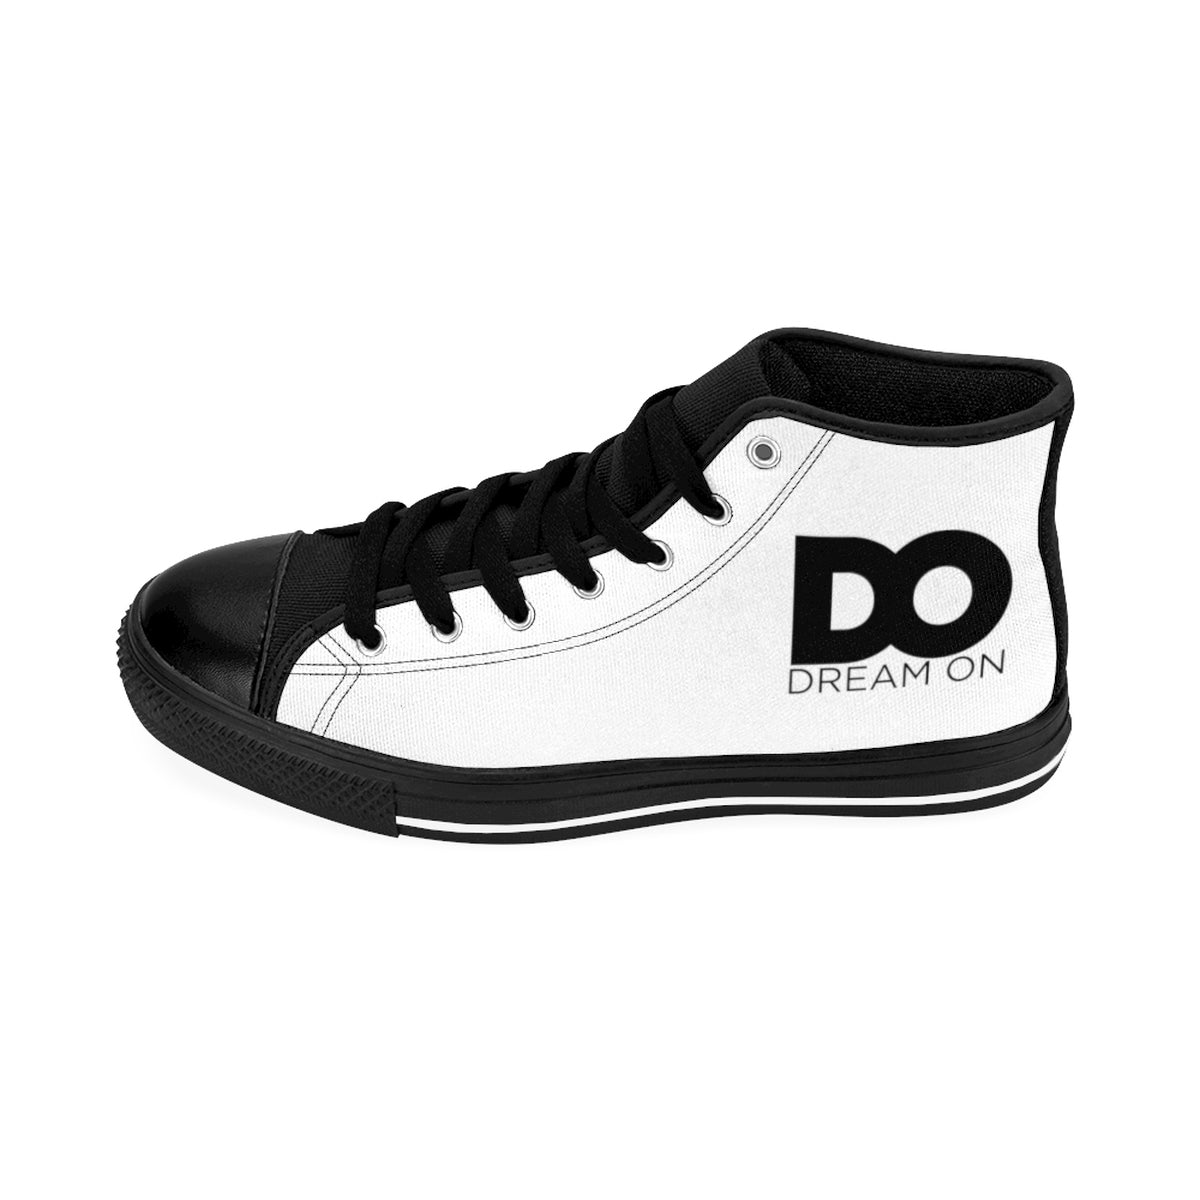 DO Black & White High-Tops